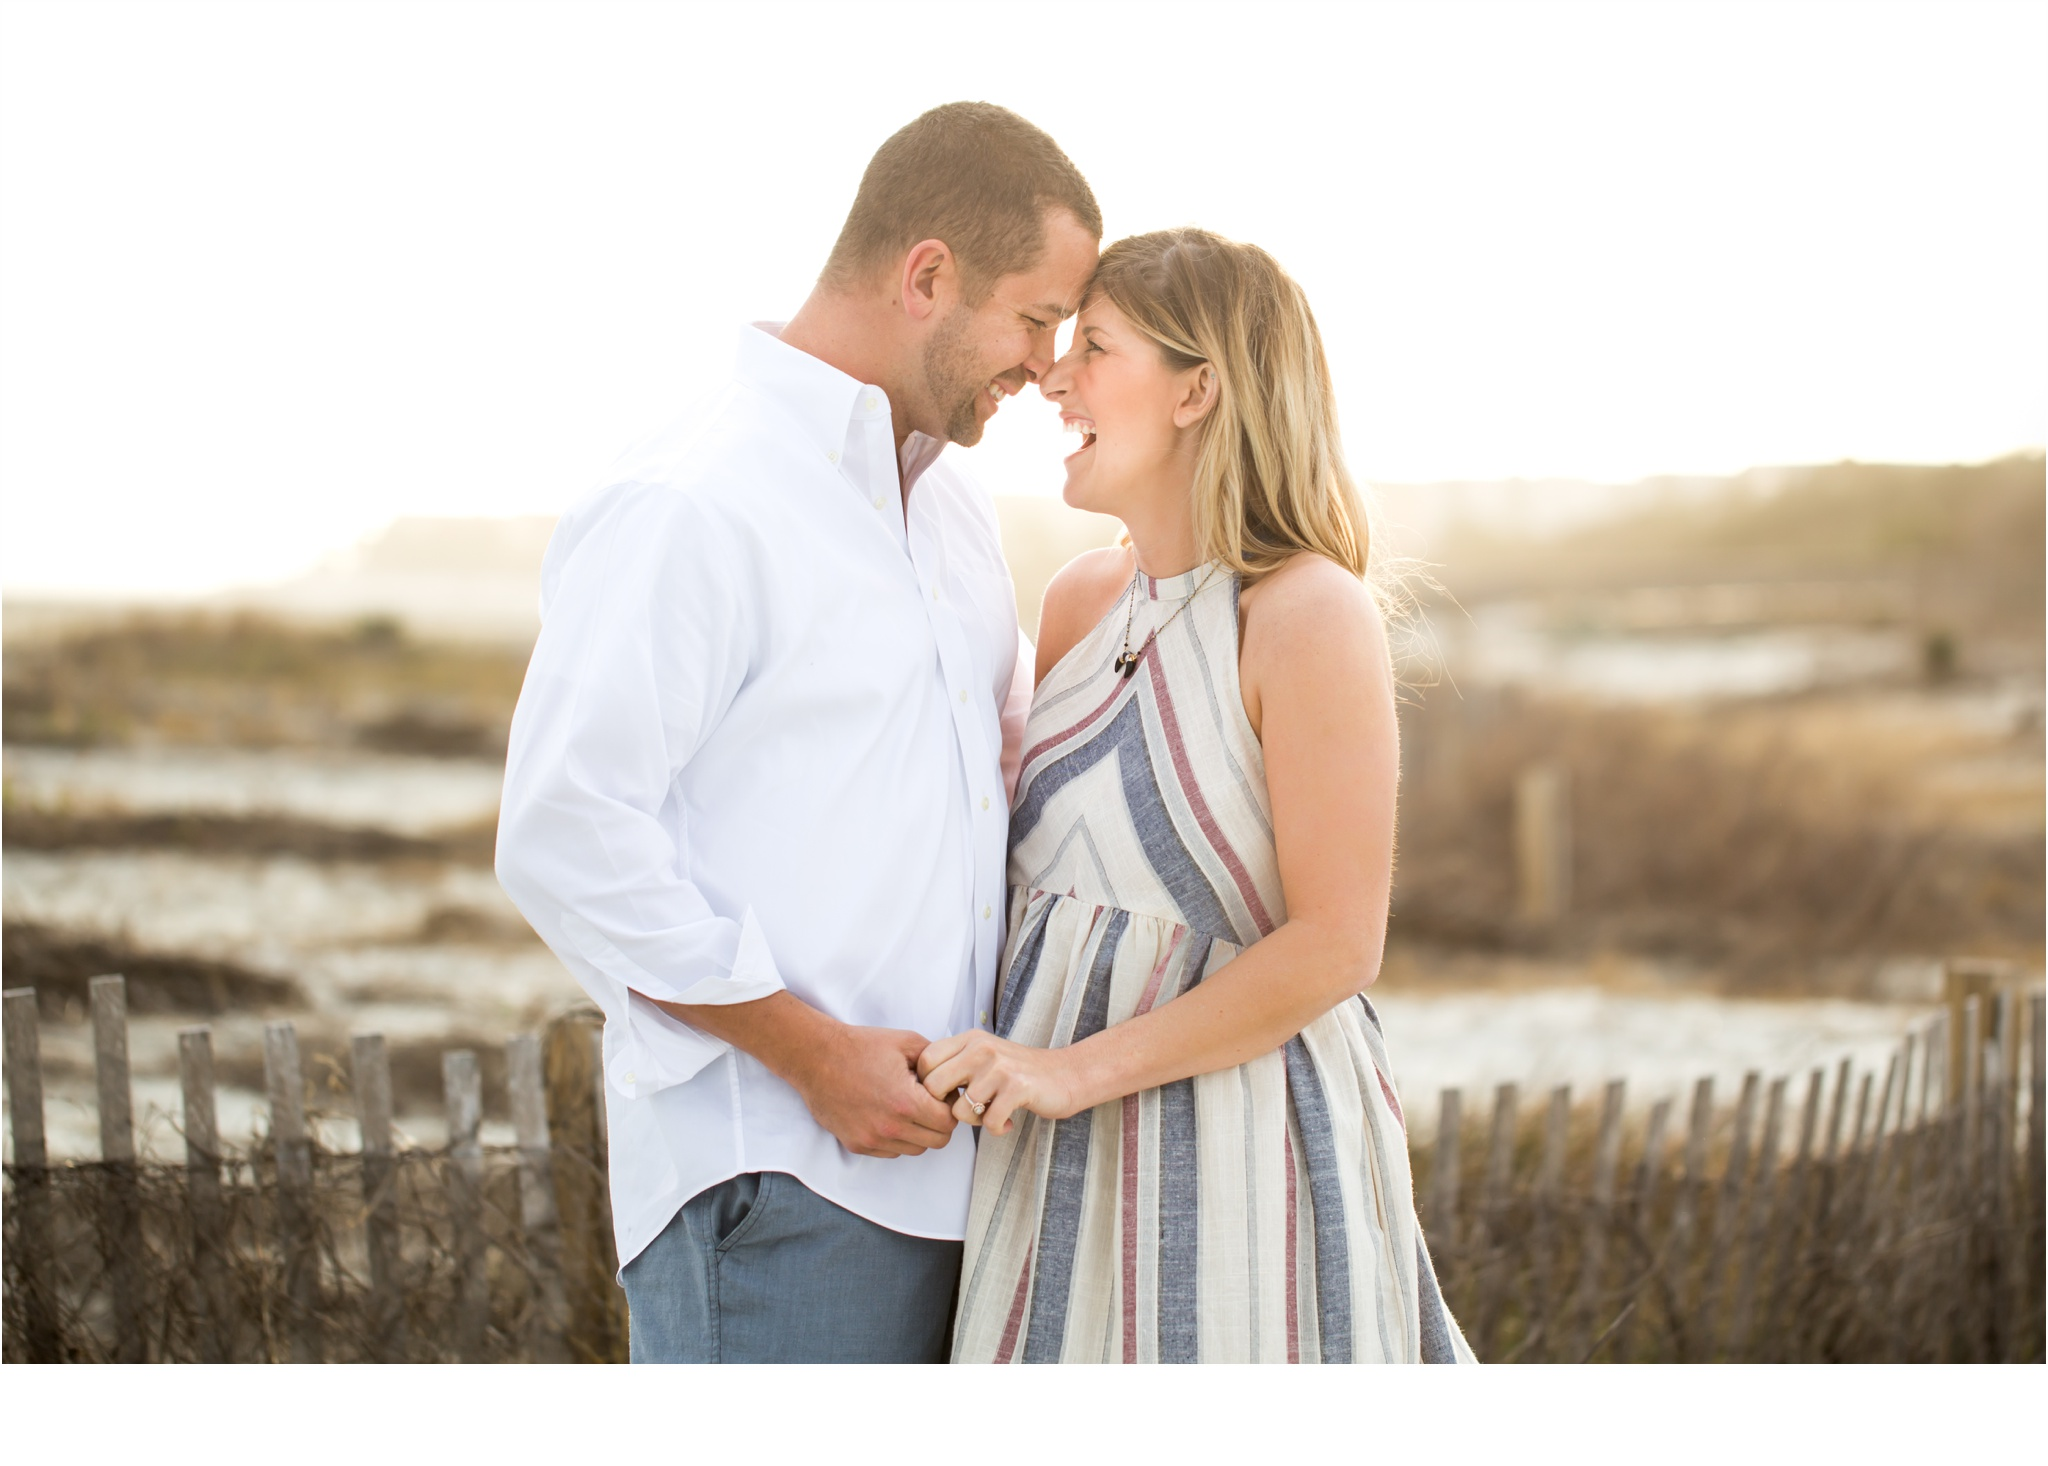 Rainey_Gregg_Photography_St._Simons_Island_Georgia_California_Wedding_Portrait_Photography_0555.jpg